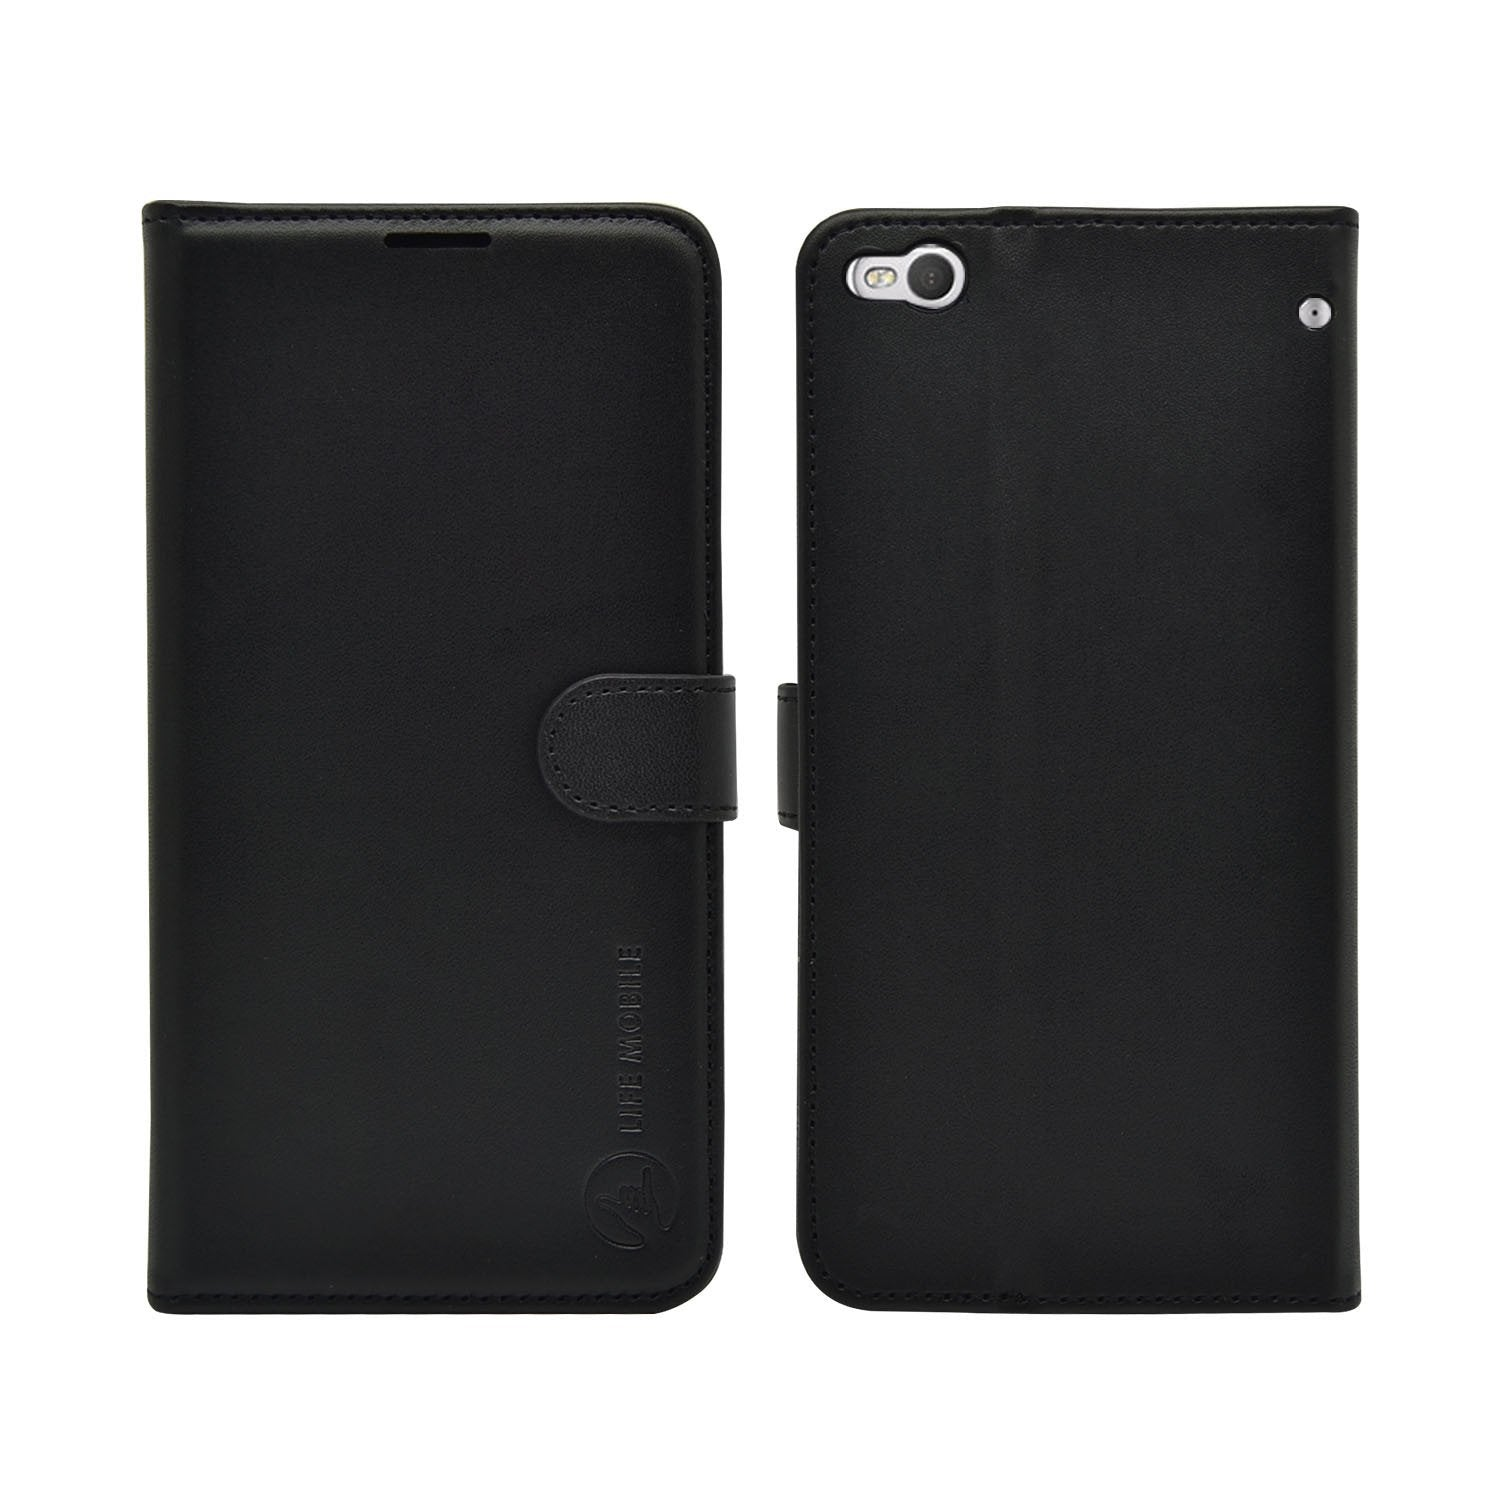 EVERYDAY Leather Wallet Phone Cover - HTC X9